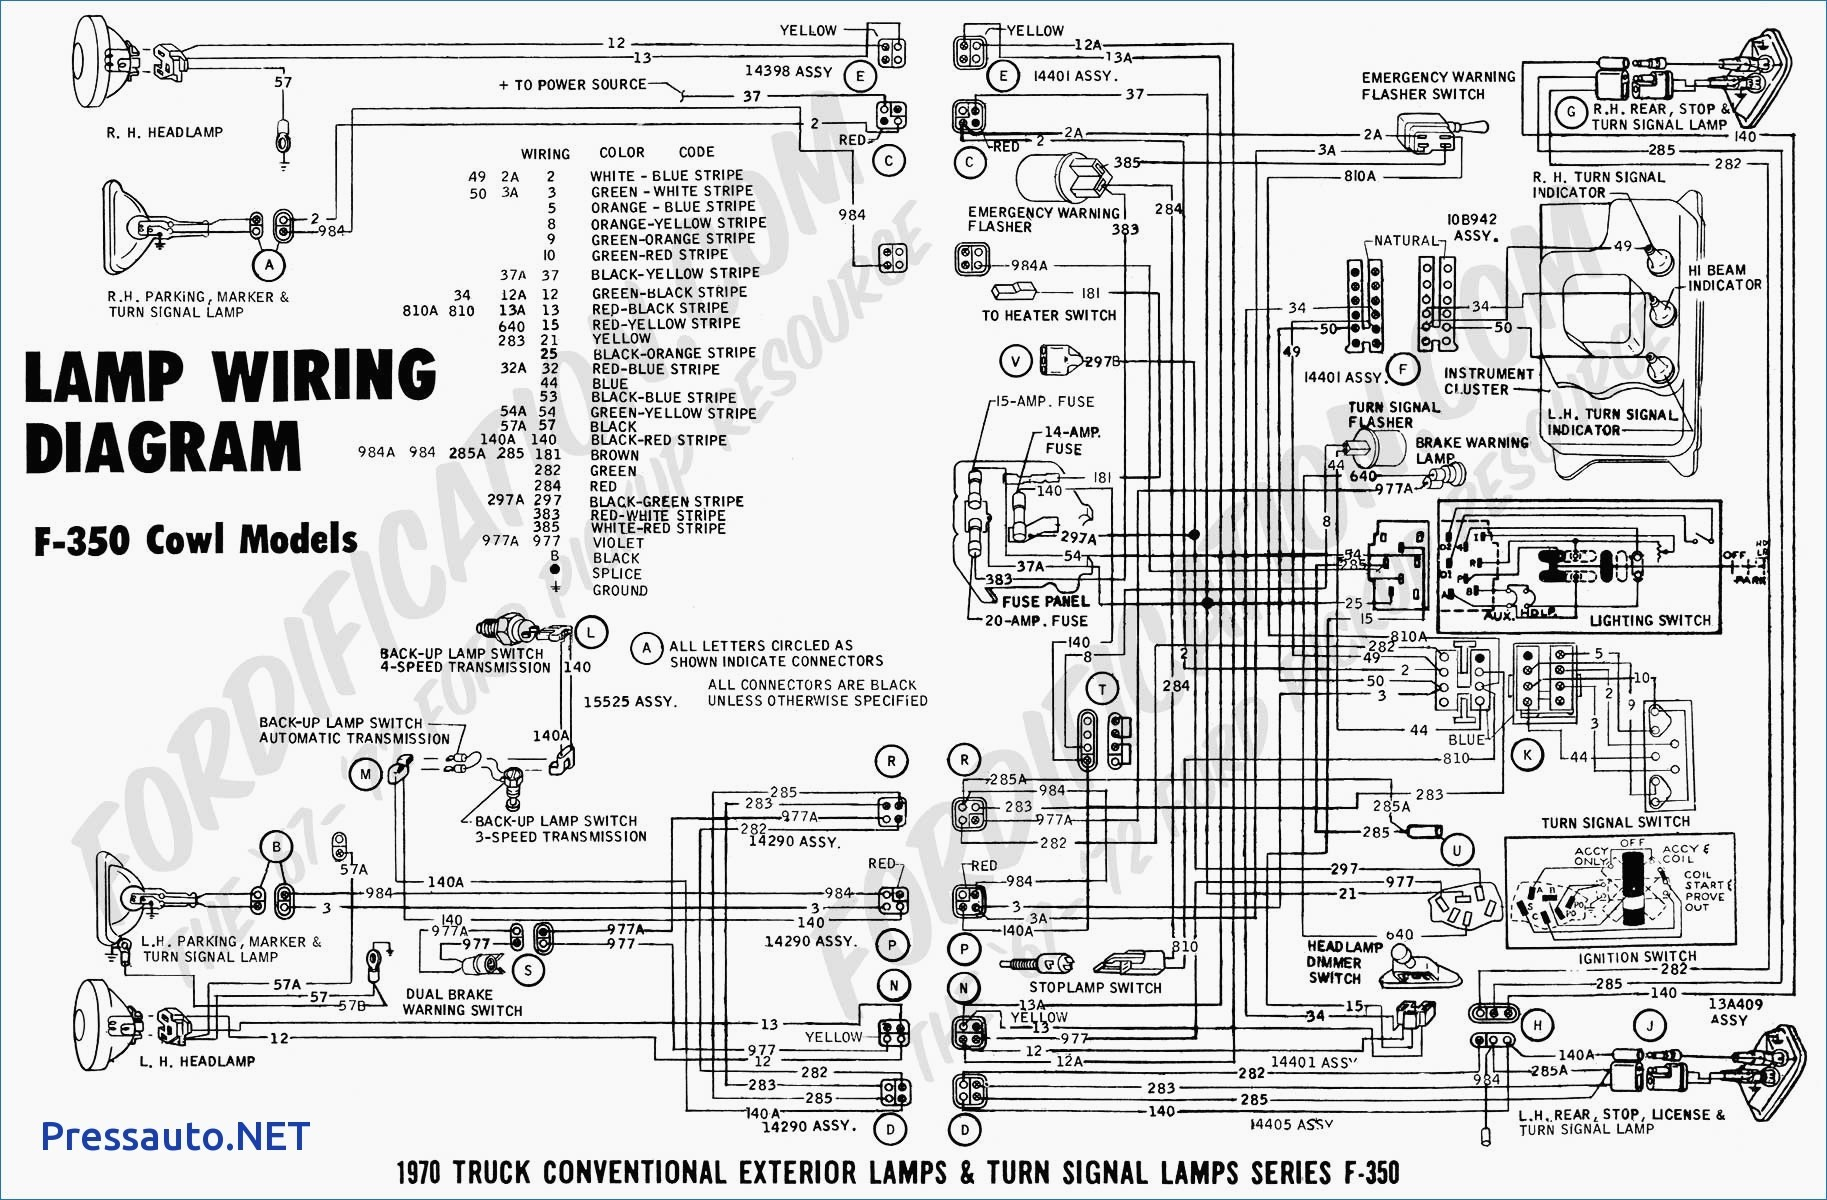 1997 ford Explorer Engine Diagram I Need the Wiring Diagram for A 1996 ford Explorer Radio 1997 Also Of 1997 ford Explorer Engine Diagram 1997 ford Ranger 4 0 Spark Plug Wiring Diagram original Wire